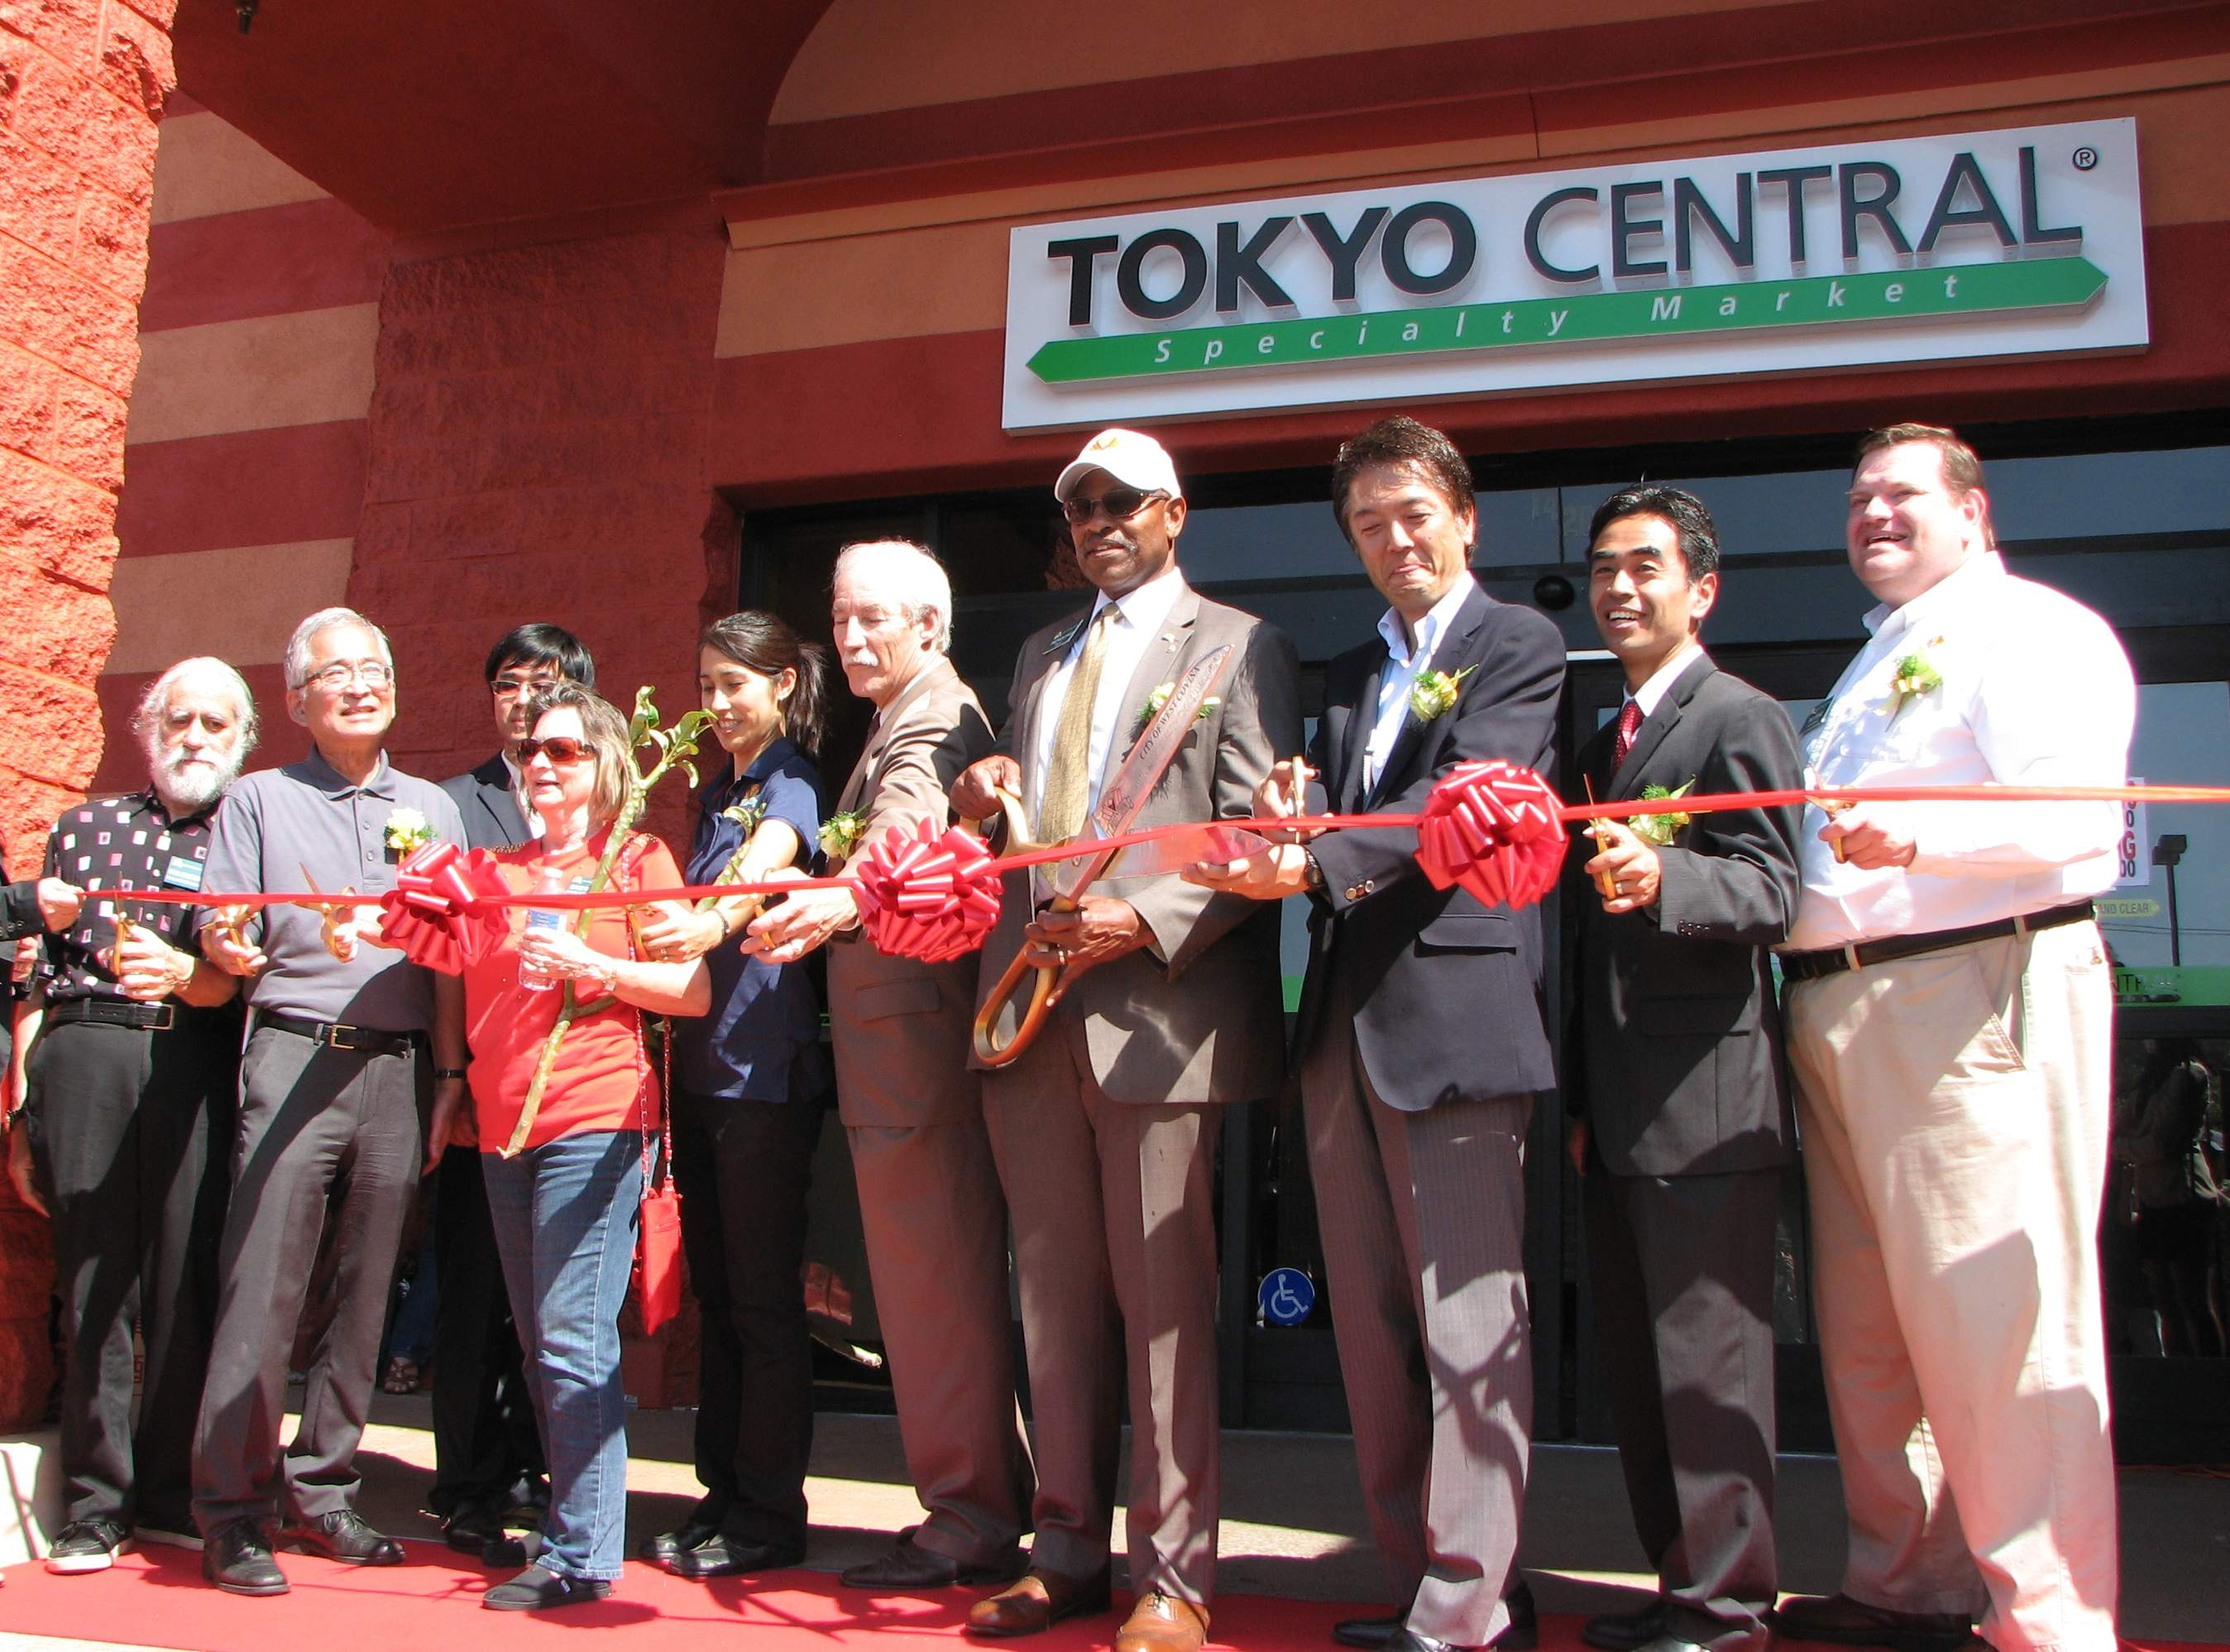 Tokyo Central Opens Its Doors in West Covina